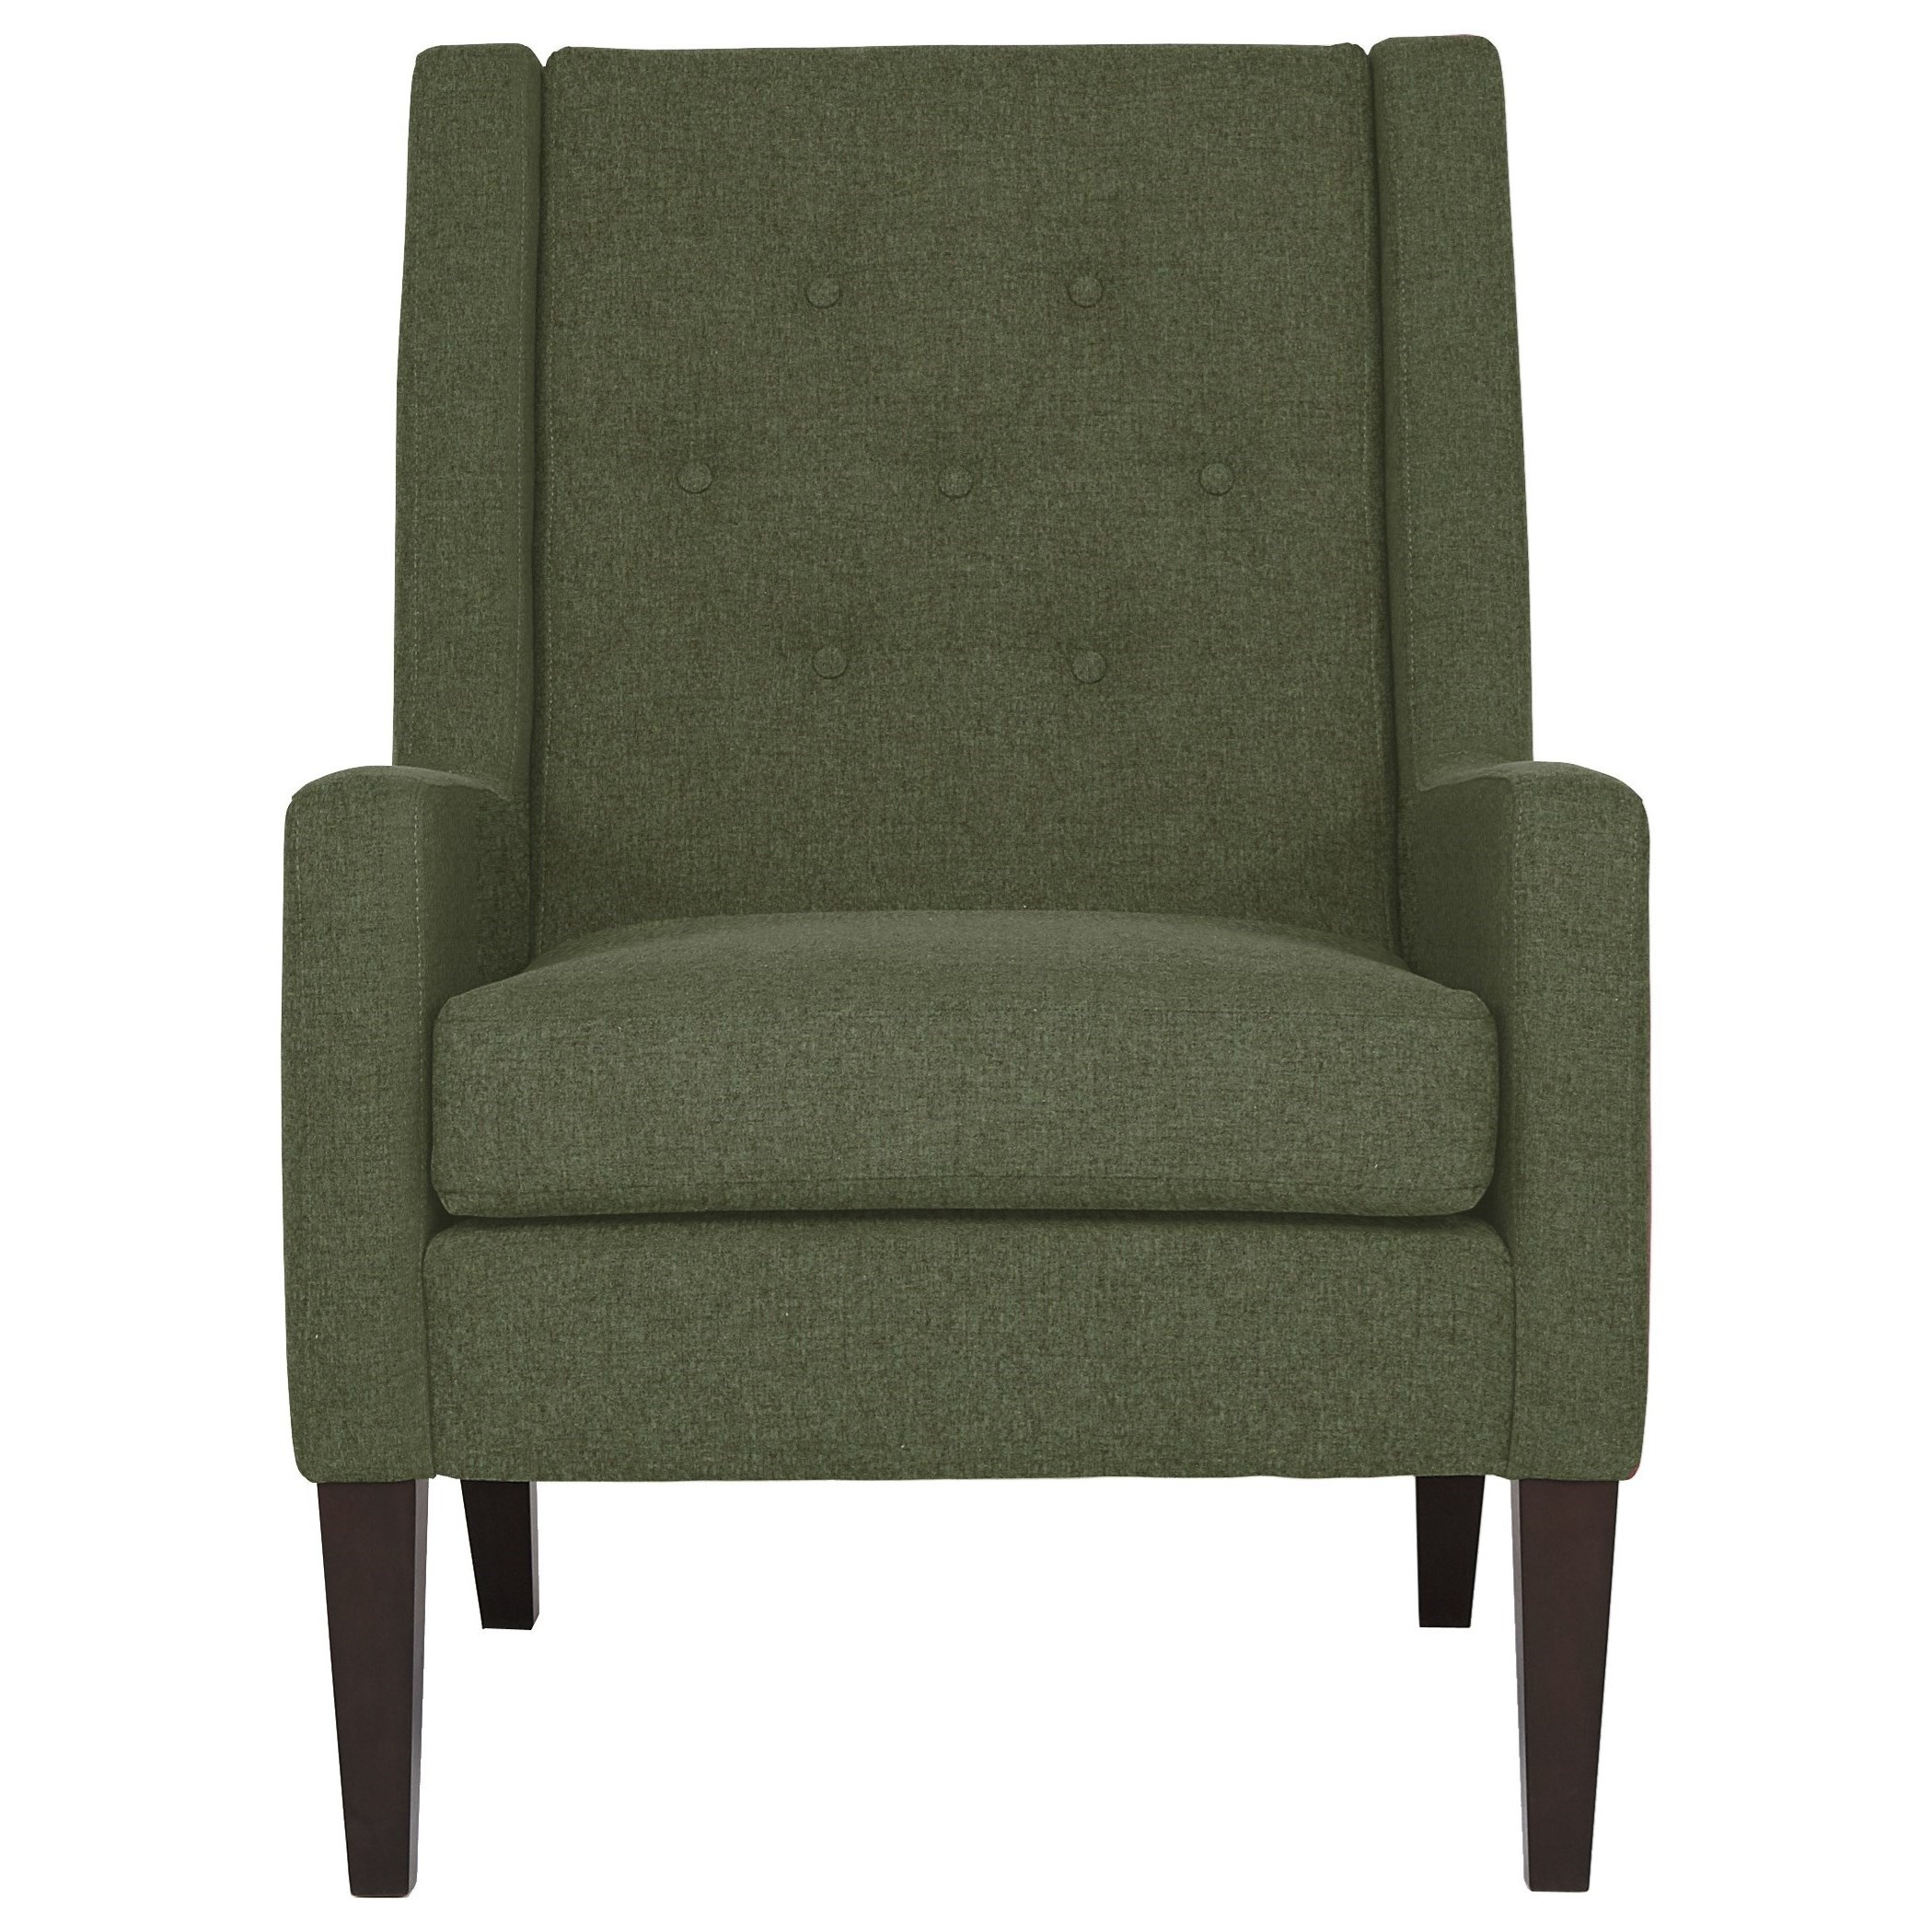 Accent Chairs Chair by Best Home Furnishings at Rife's Home Furniture